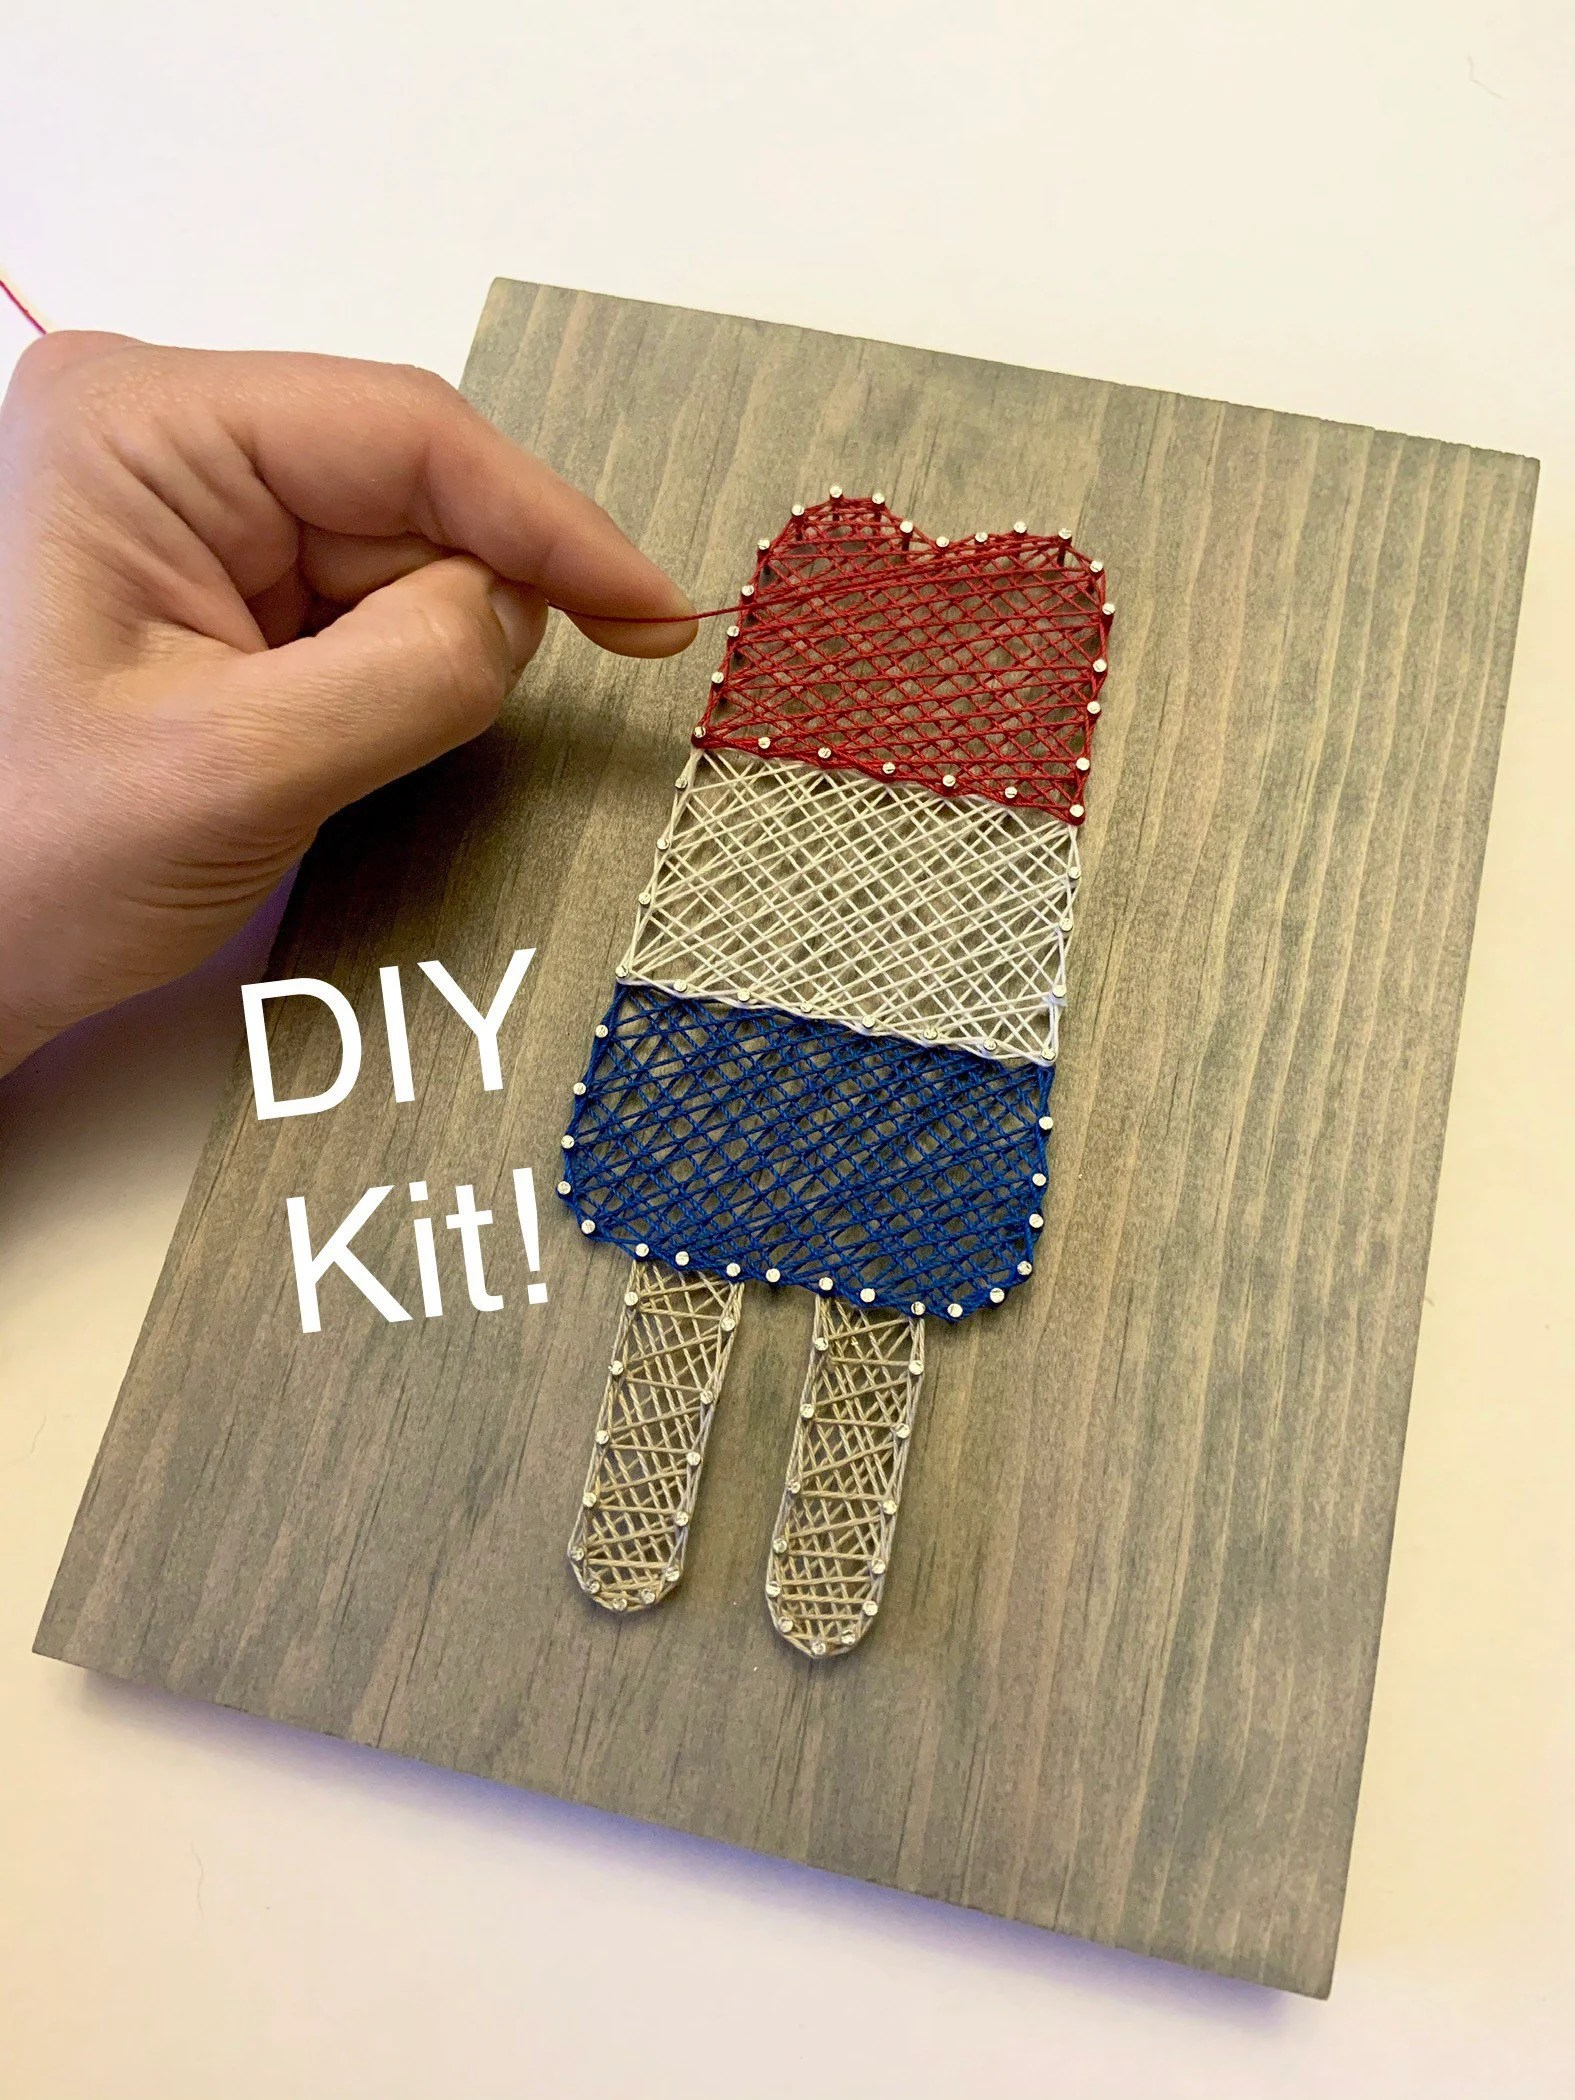 Diy String Art Kits For Adults : string, adults, String, Craft, Handmade, Canada